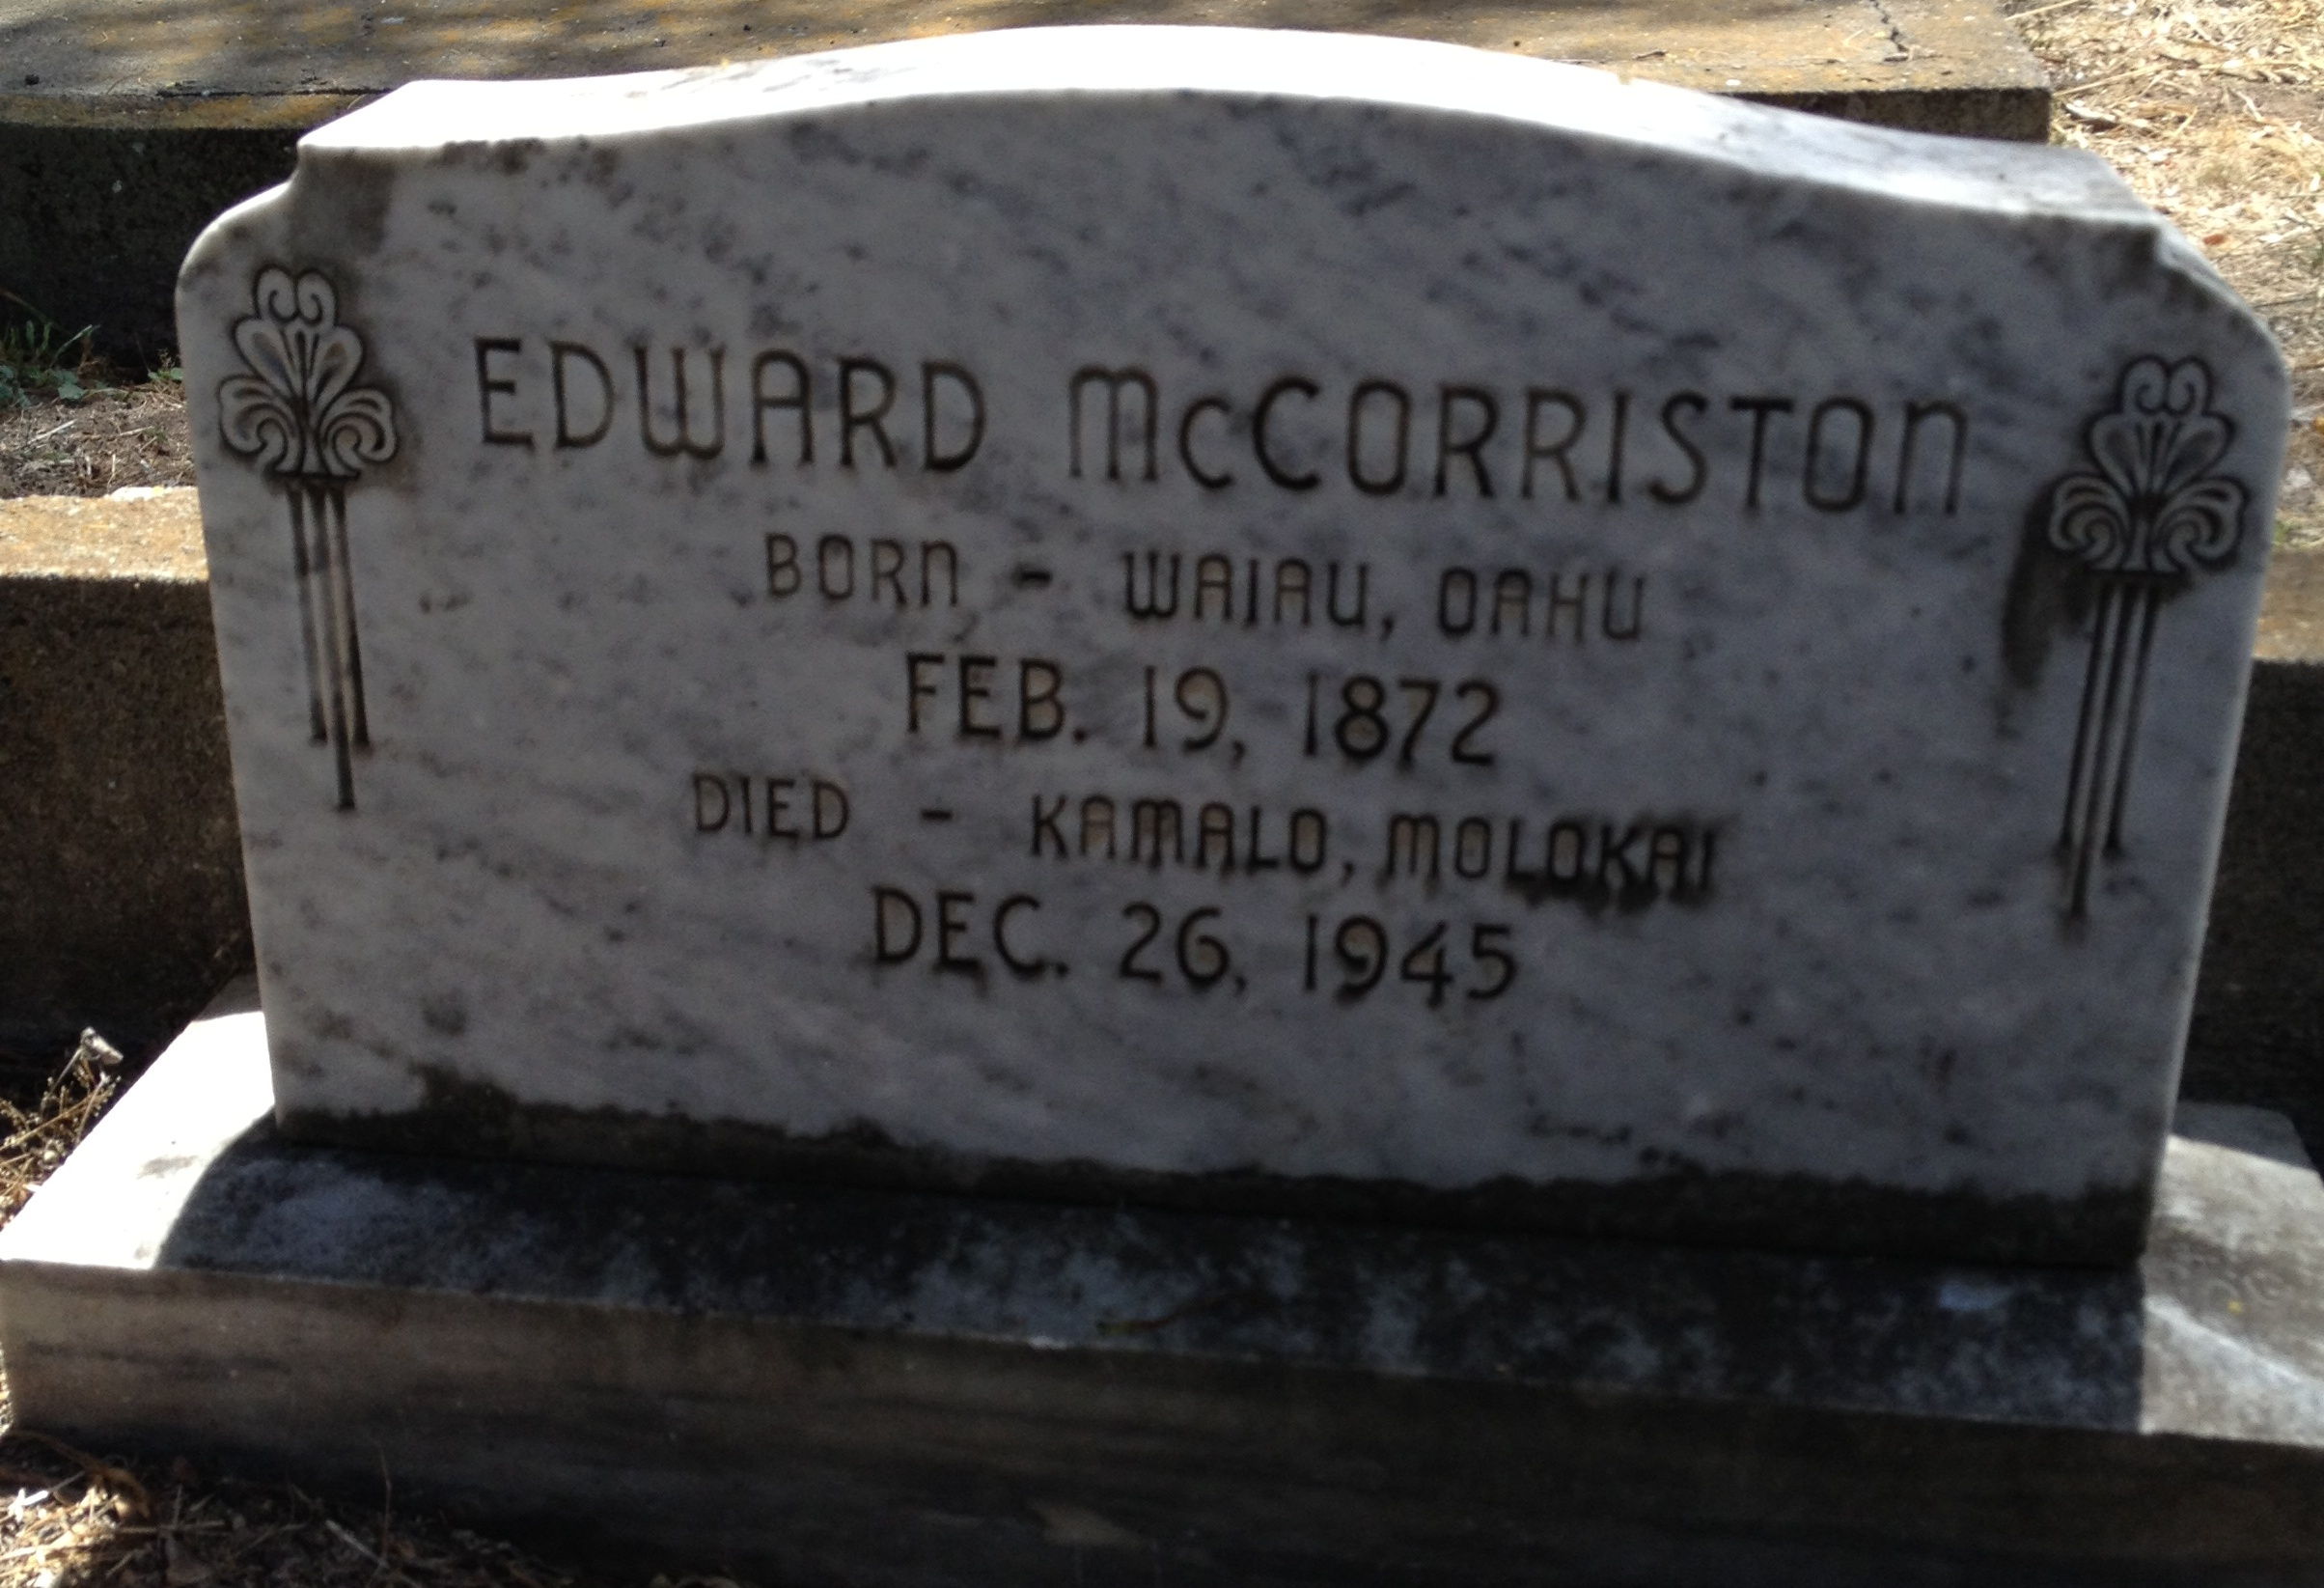 Headstone of Edward McCorriston